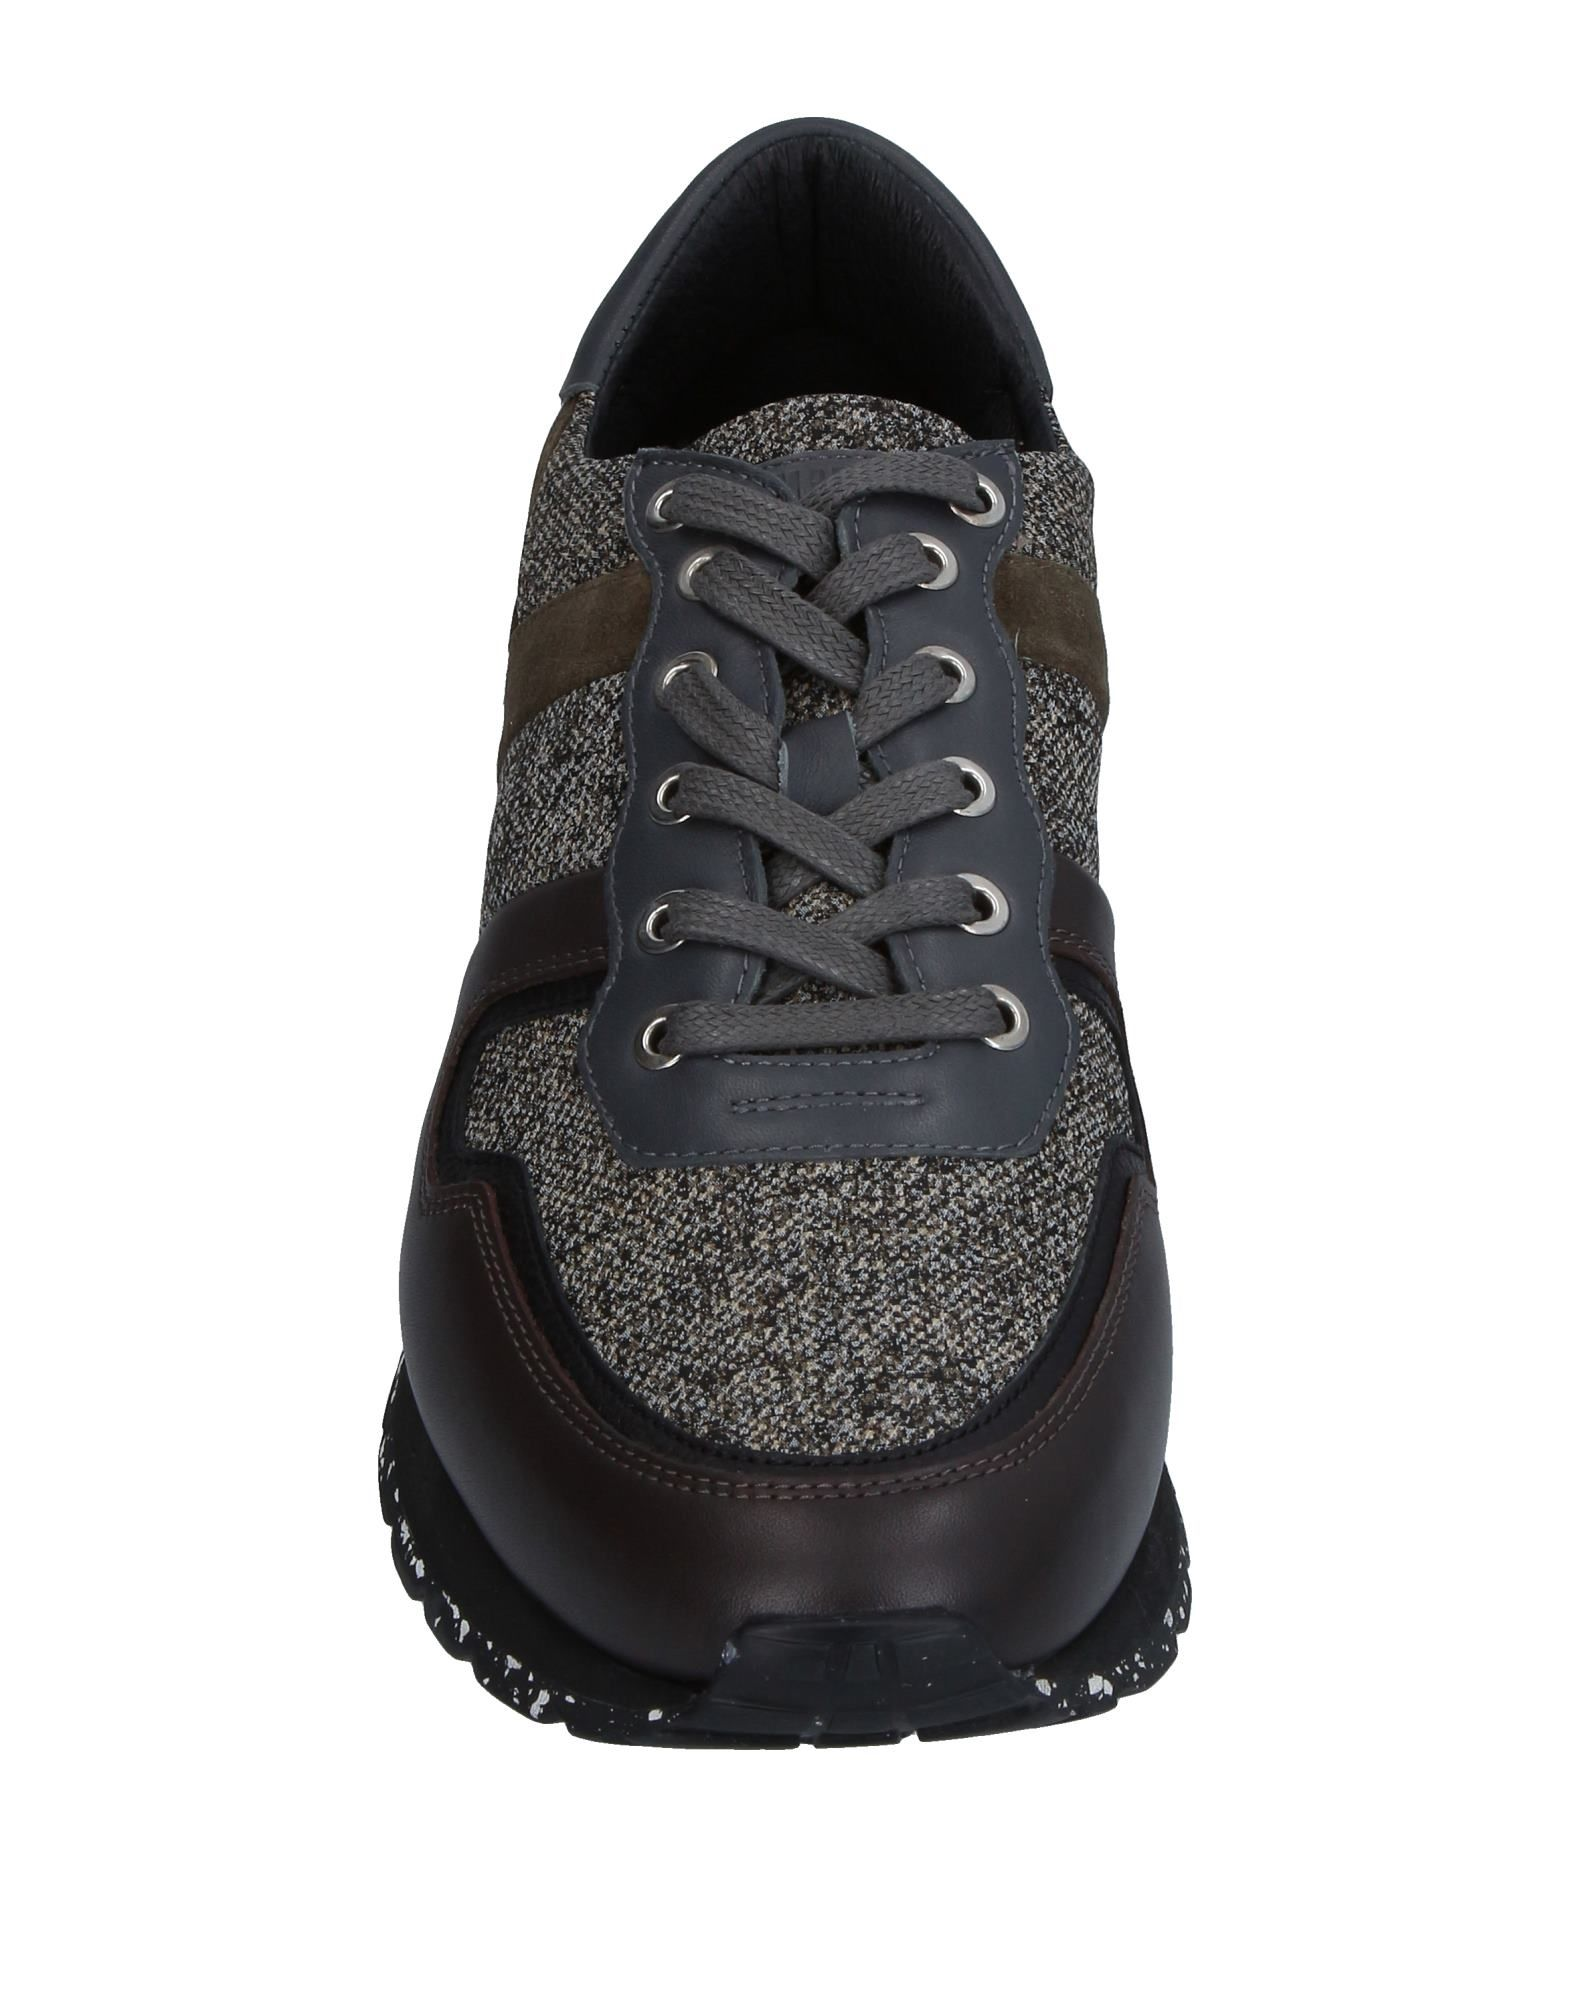 Bikkembergs Sneakers - Men Bikkembergs Sneakers online on    Canada - 11261207MQ a83982